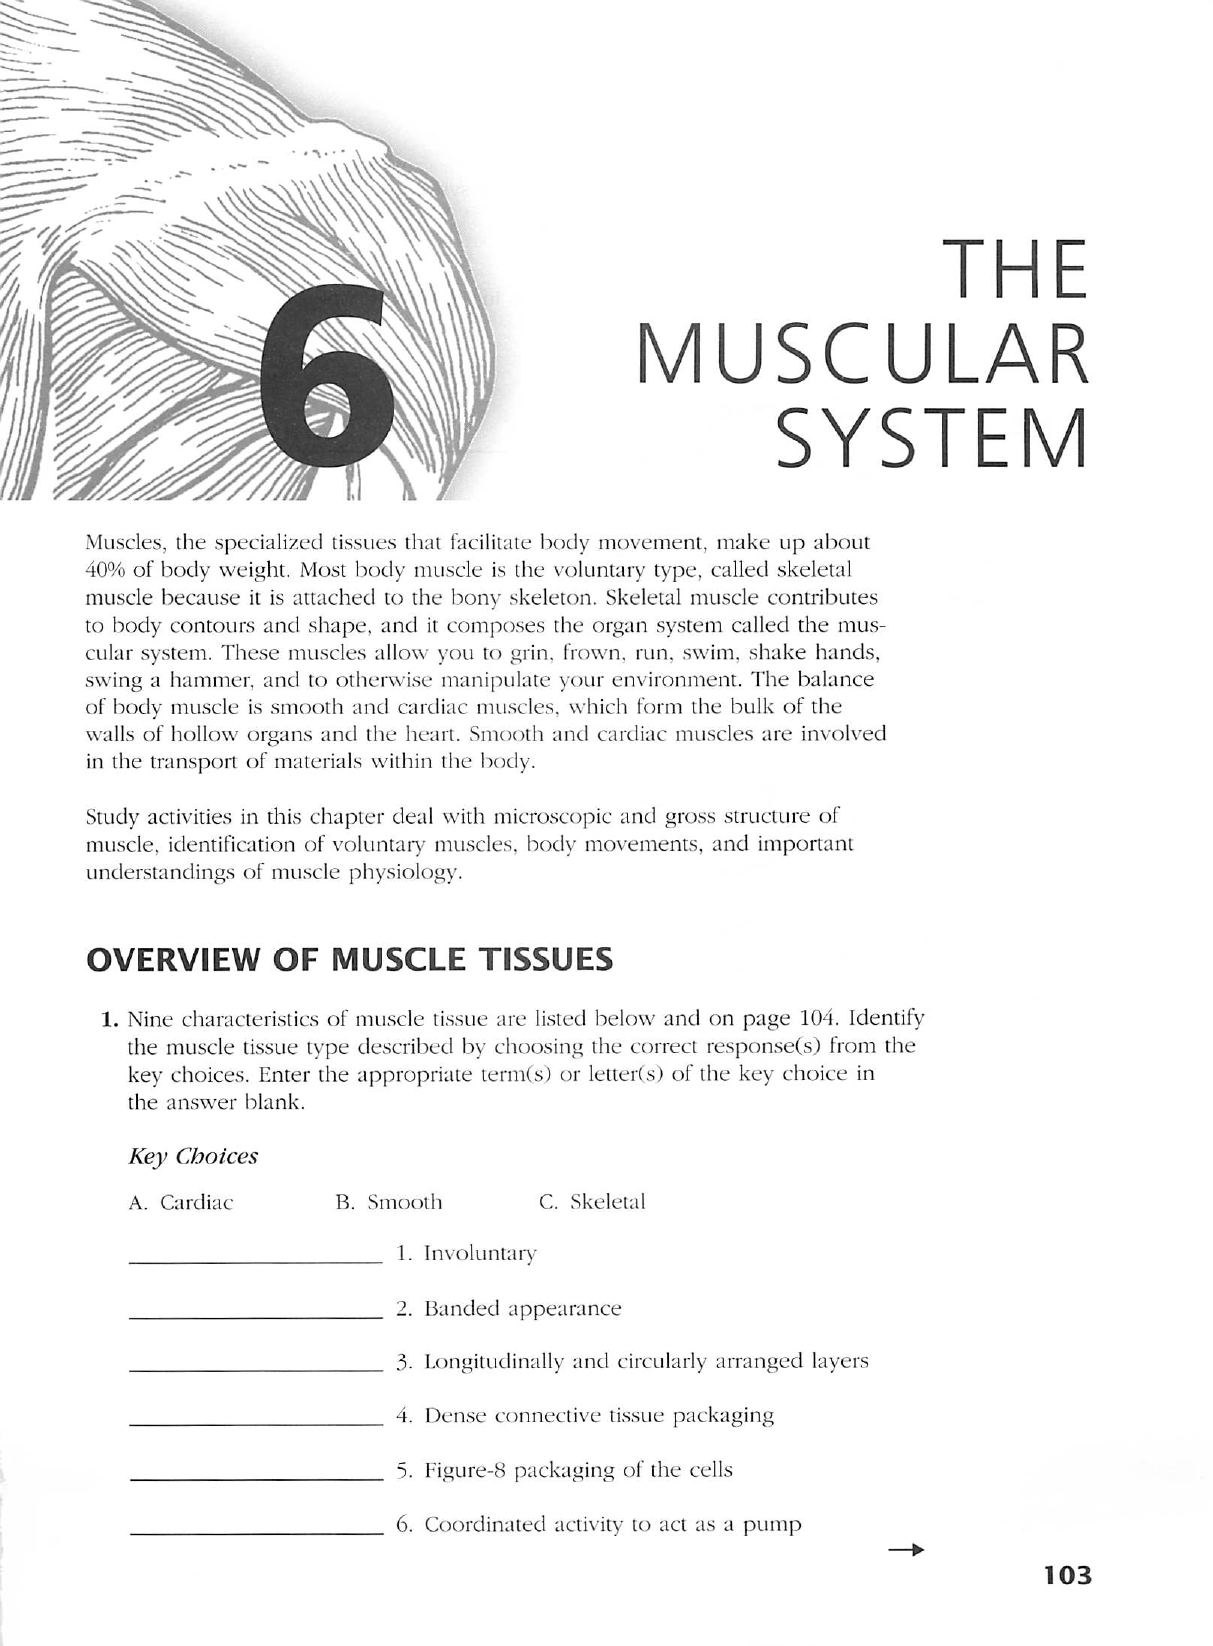 Anatomy And Physiology Coloring Workbook Chapter 6 Developmental Aspects Of The Muscular System